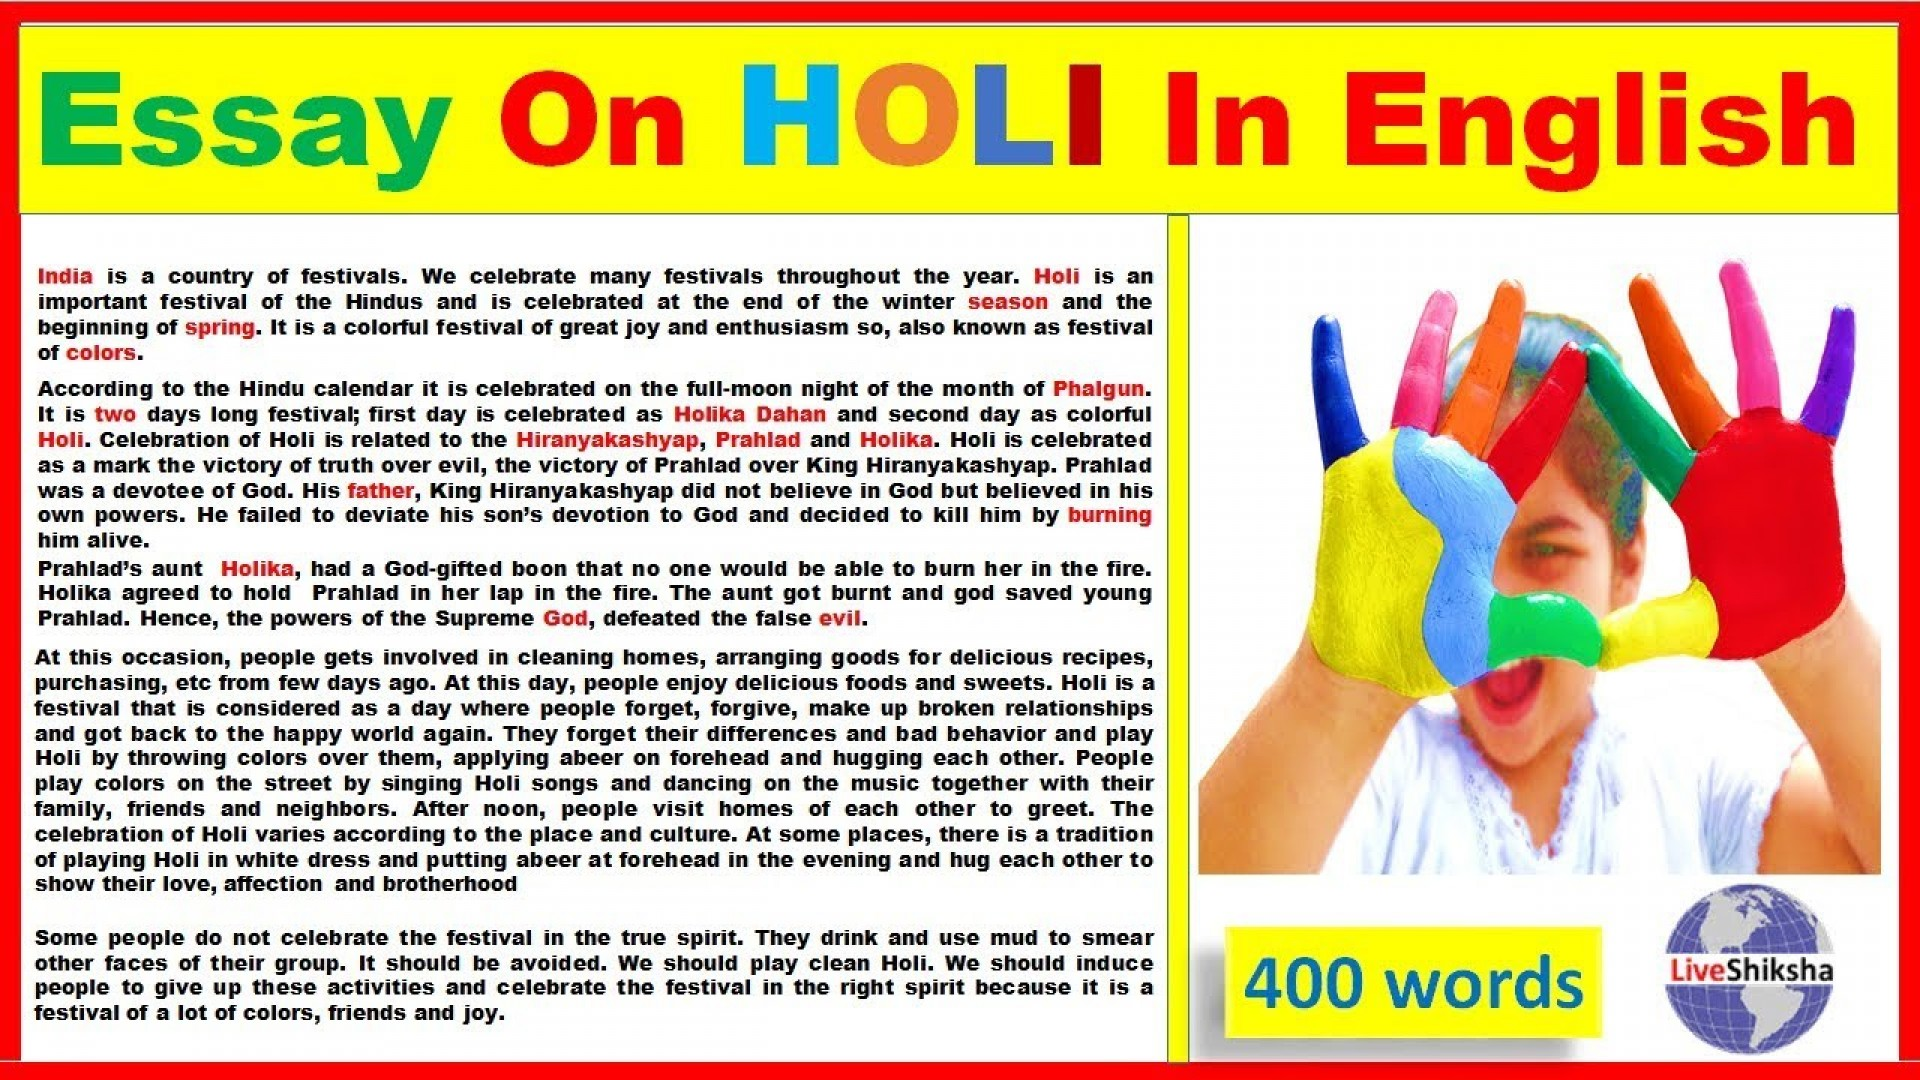 001 Holi Essay In English Maxresdefault Breathtaking For Class 1 10 Lines Easy 1920